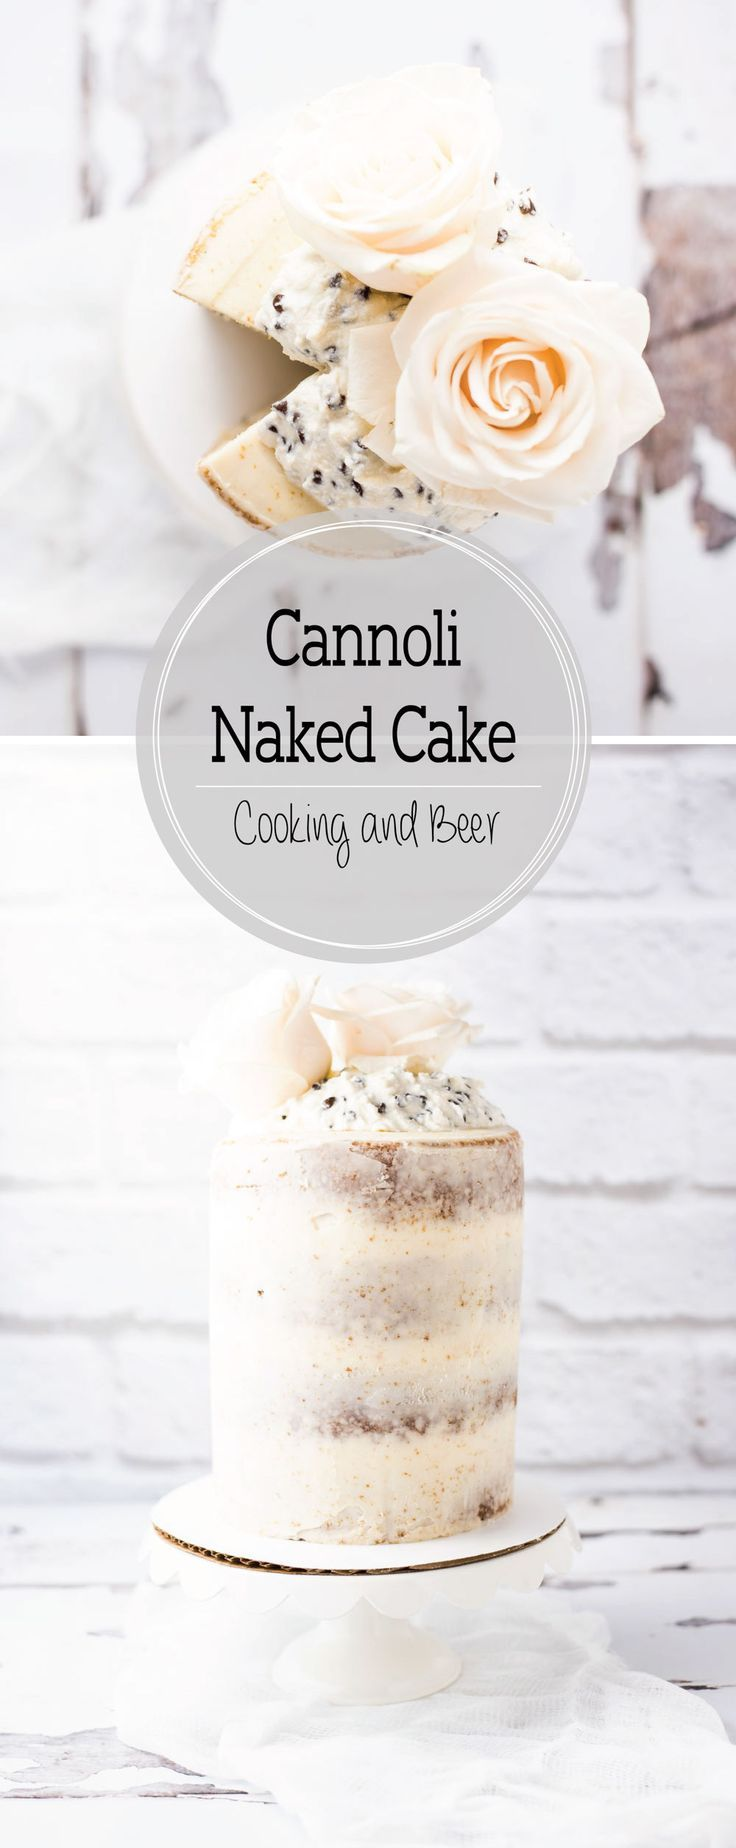 Icing For A Canolli Cake